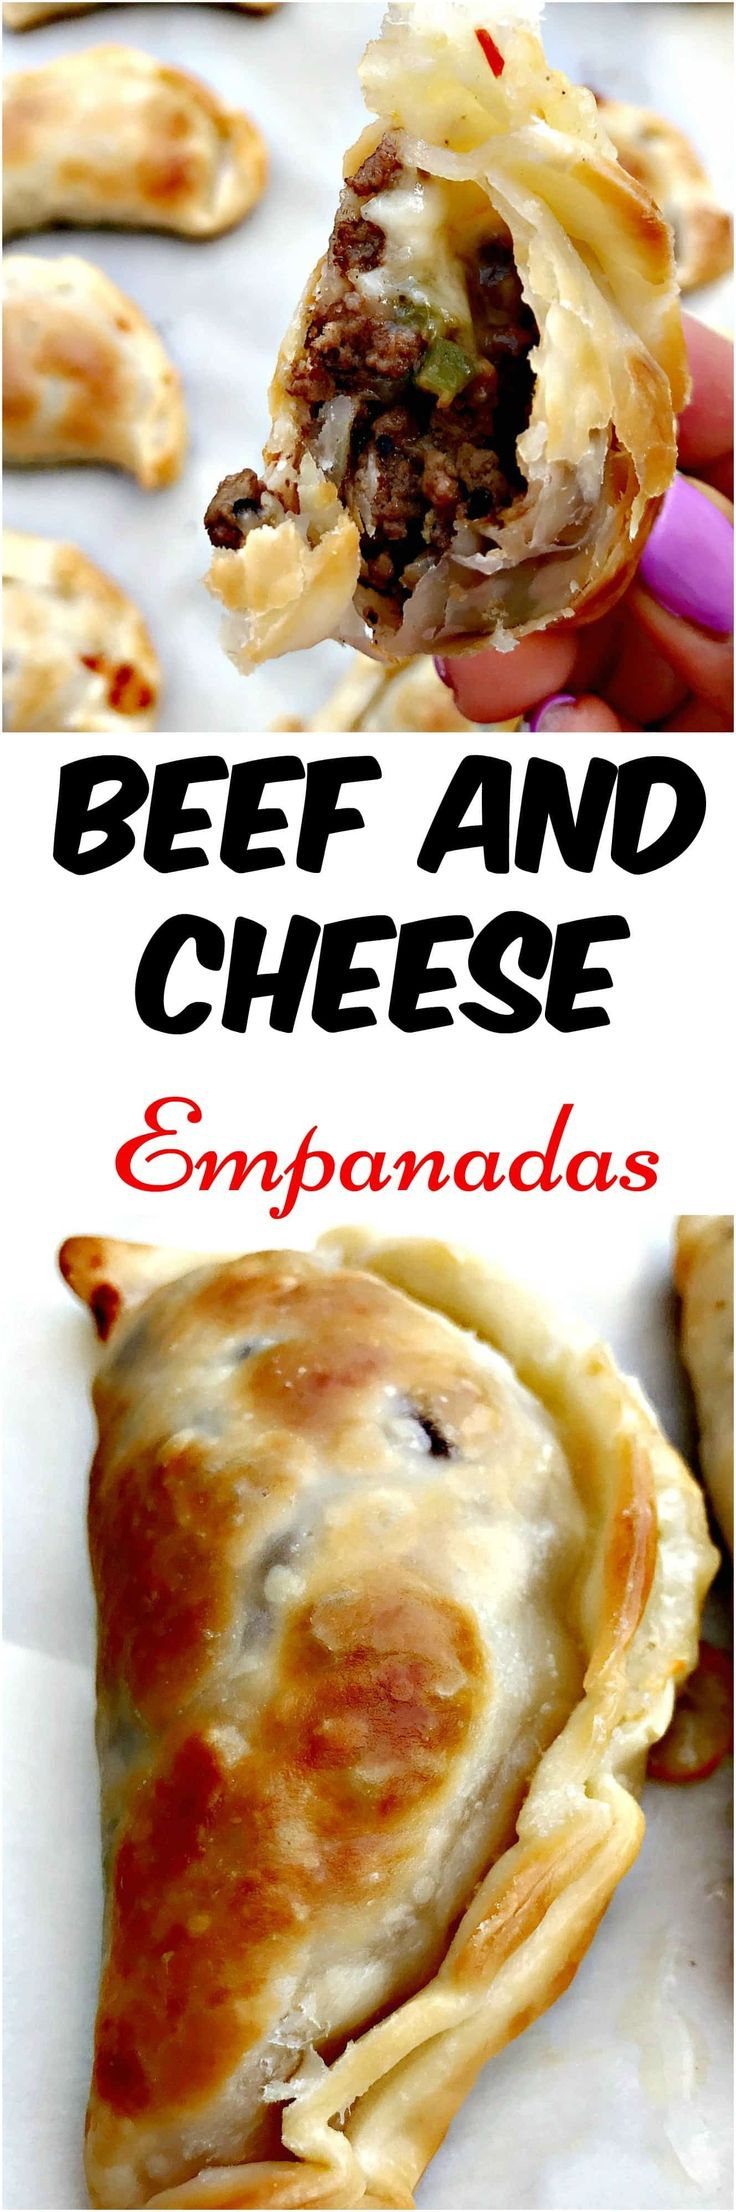 beef and cheese empanadas